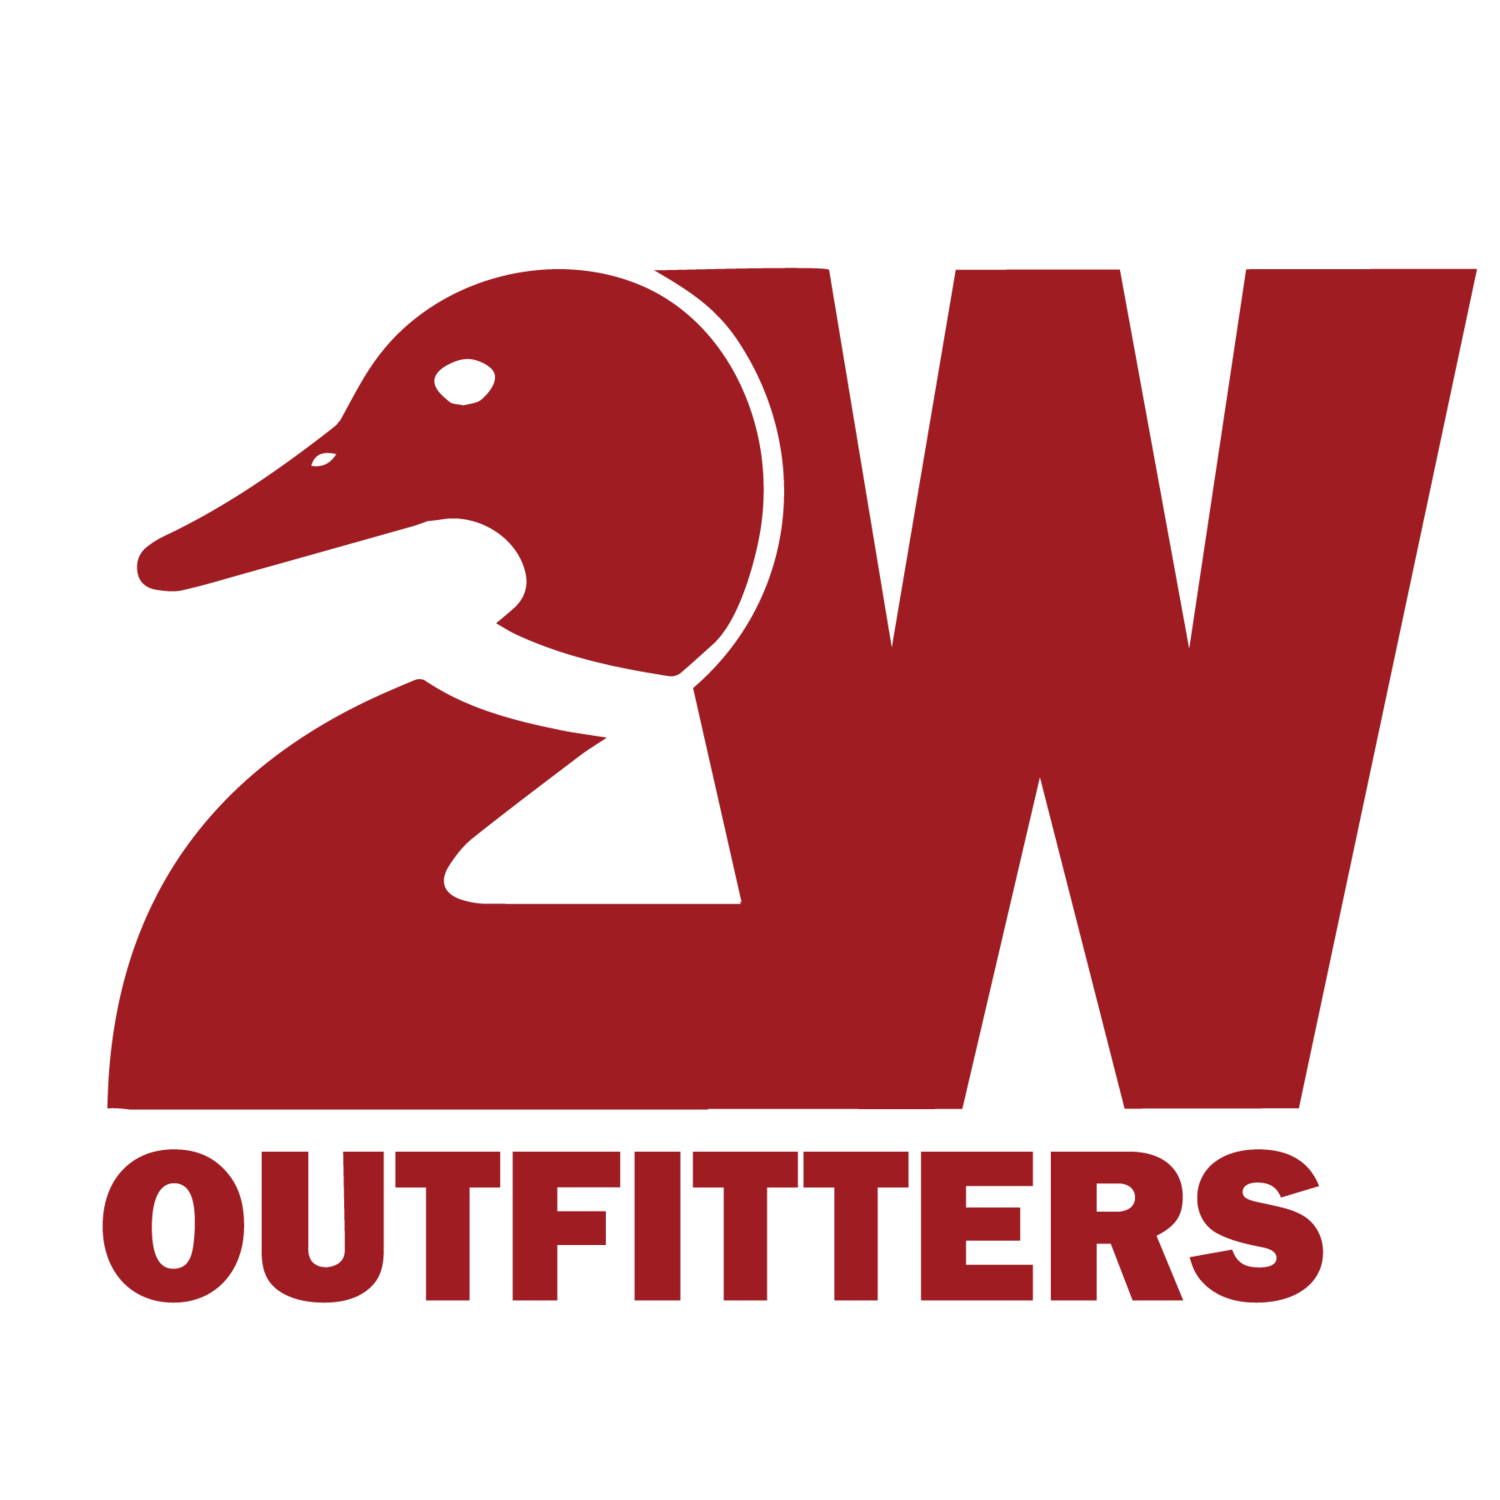 2W Outfitters